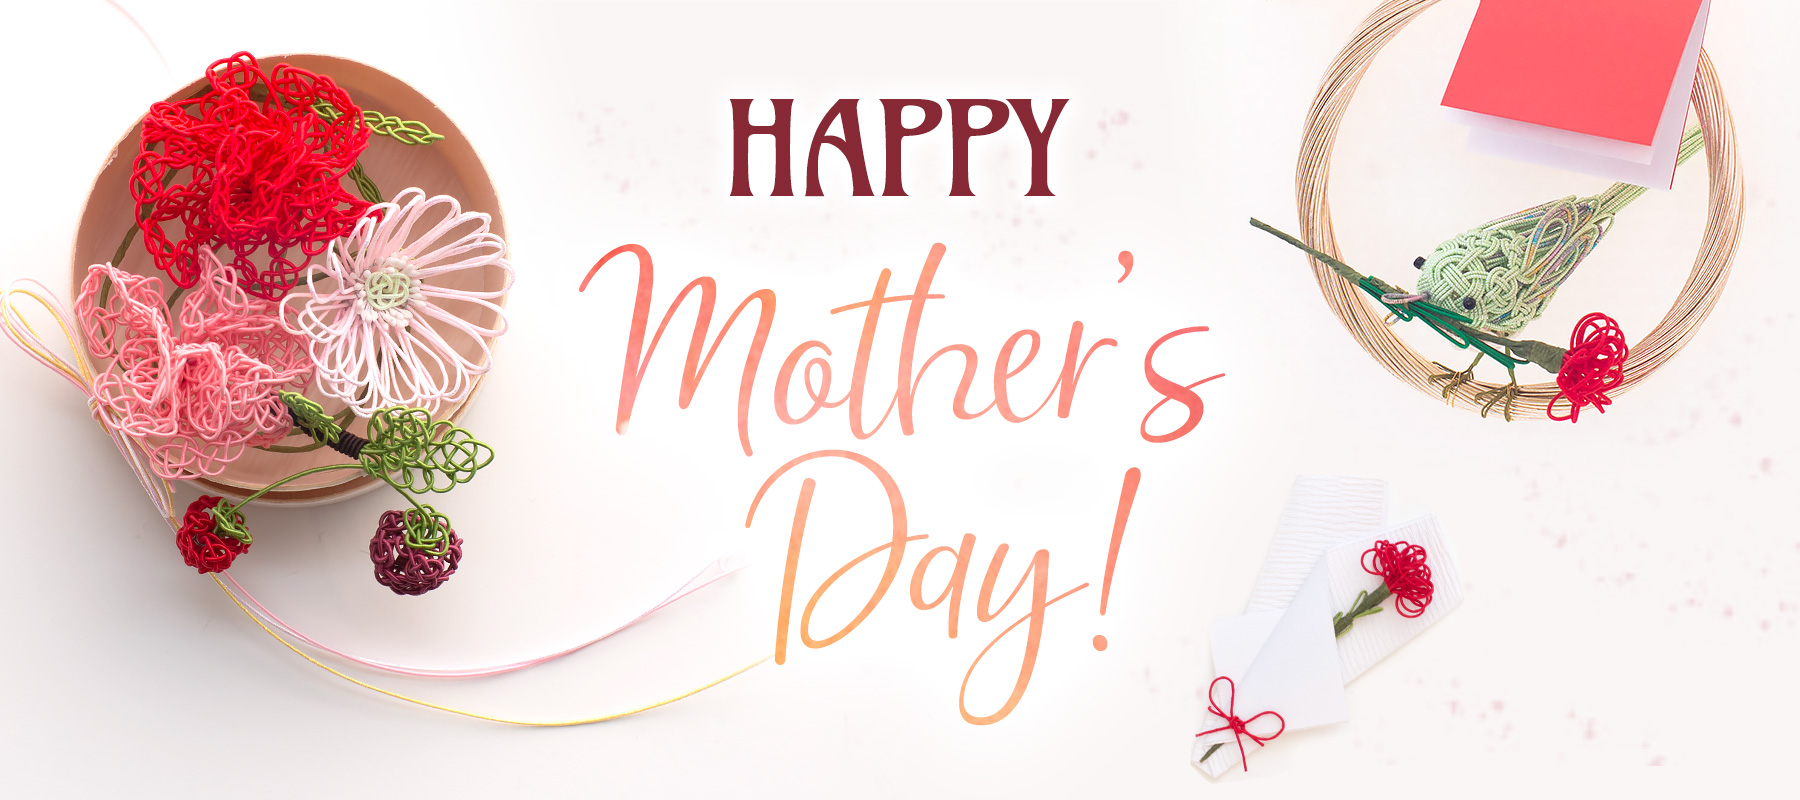 Happy Mother's Day!母の日のプレゼント